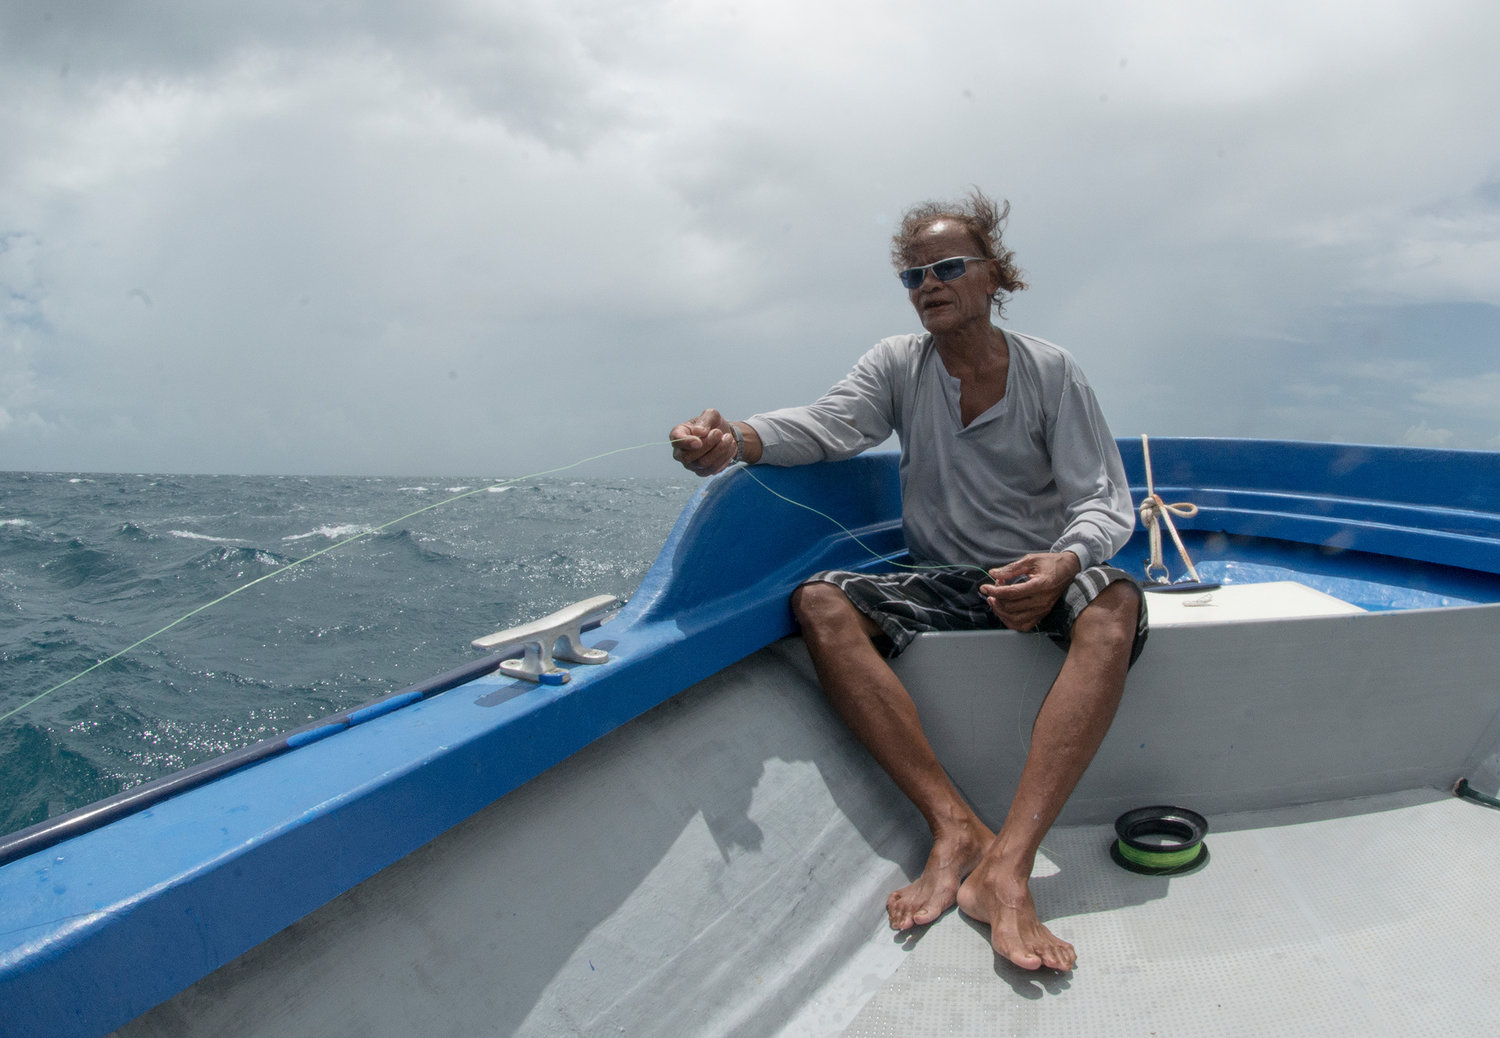 Nimrod, a Palauan fisherman using a hand line to catch reef fish. (©The Ocean Agency)